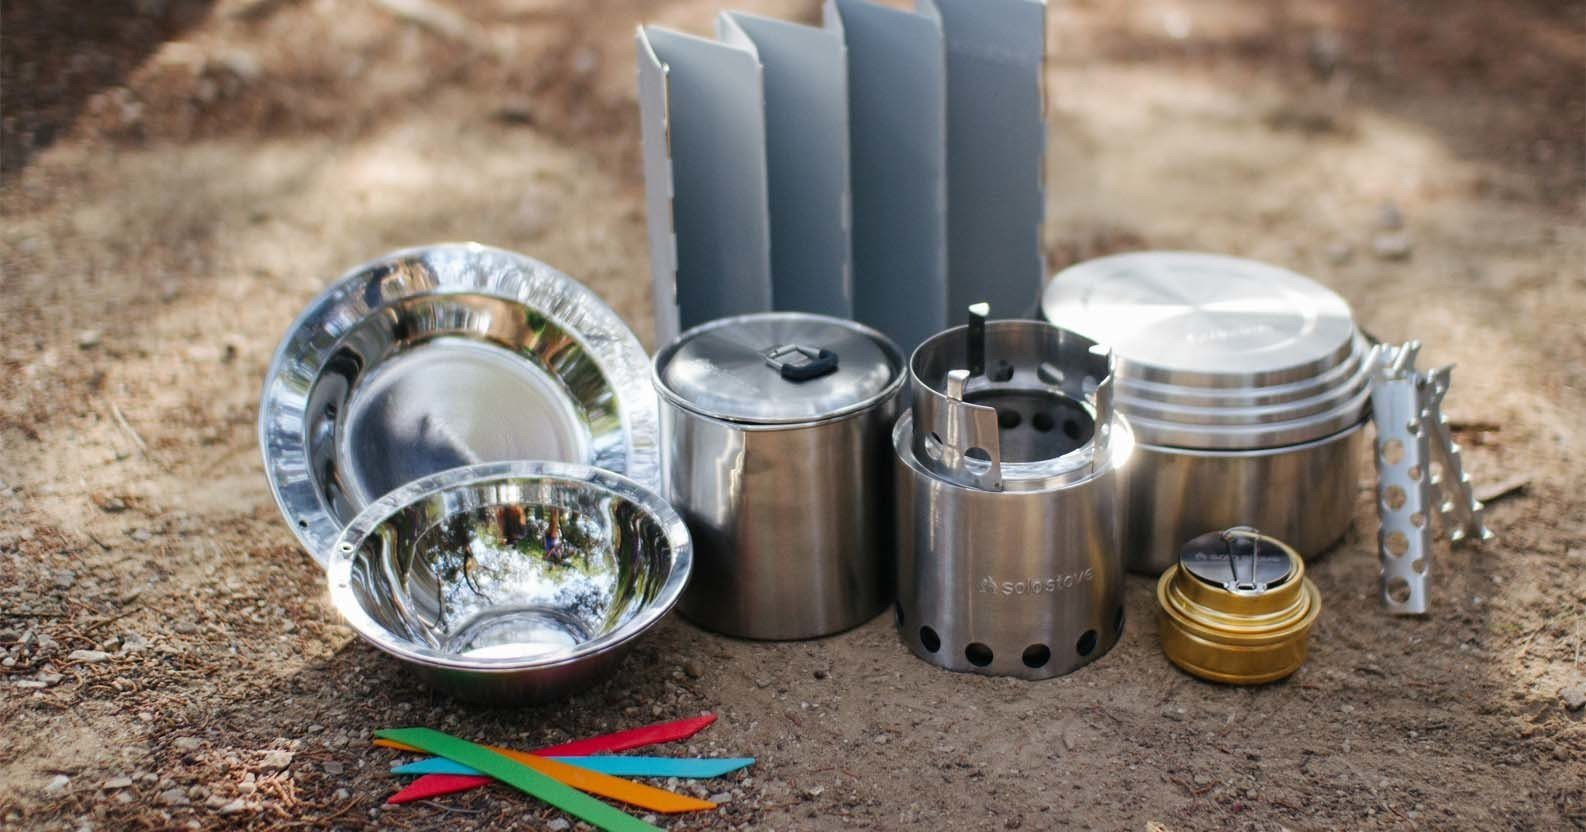 solo stove accessories and camping gear